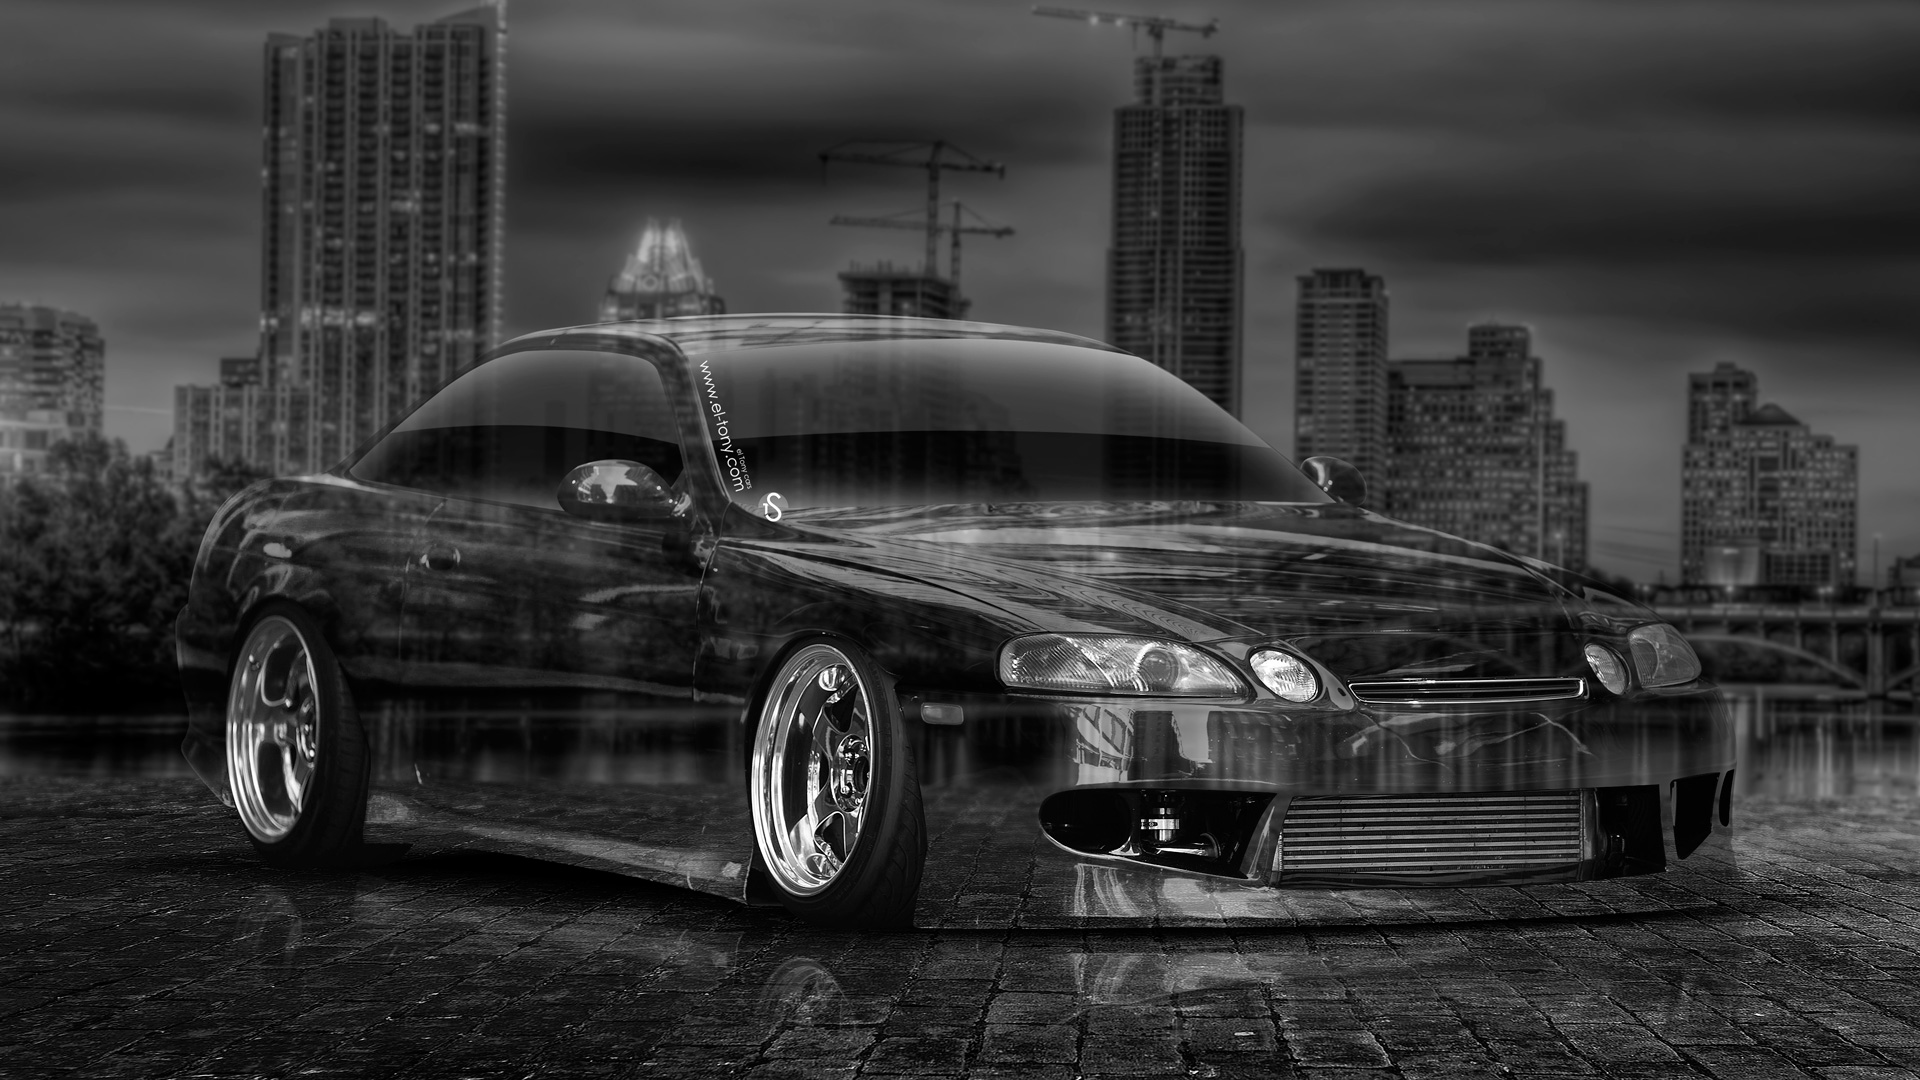 Toyota Soarer JDM Crystal City Car 2014 Art